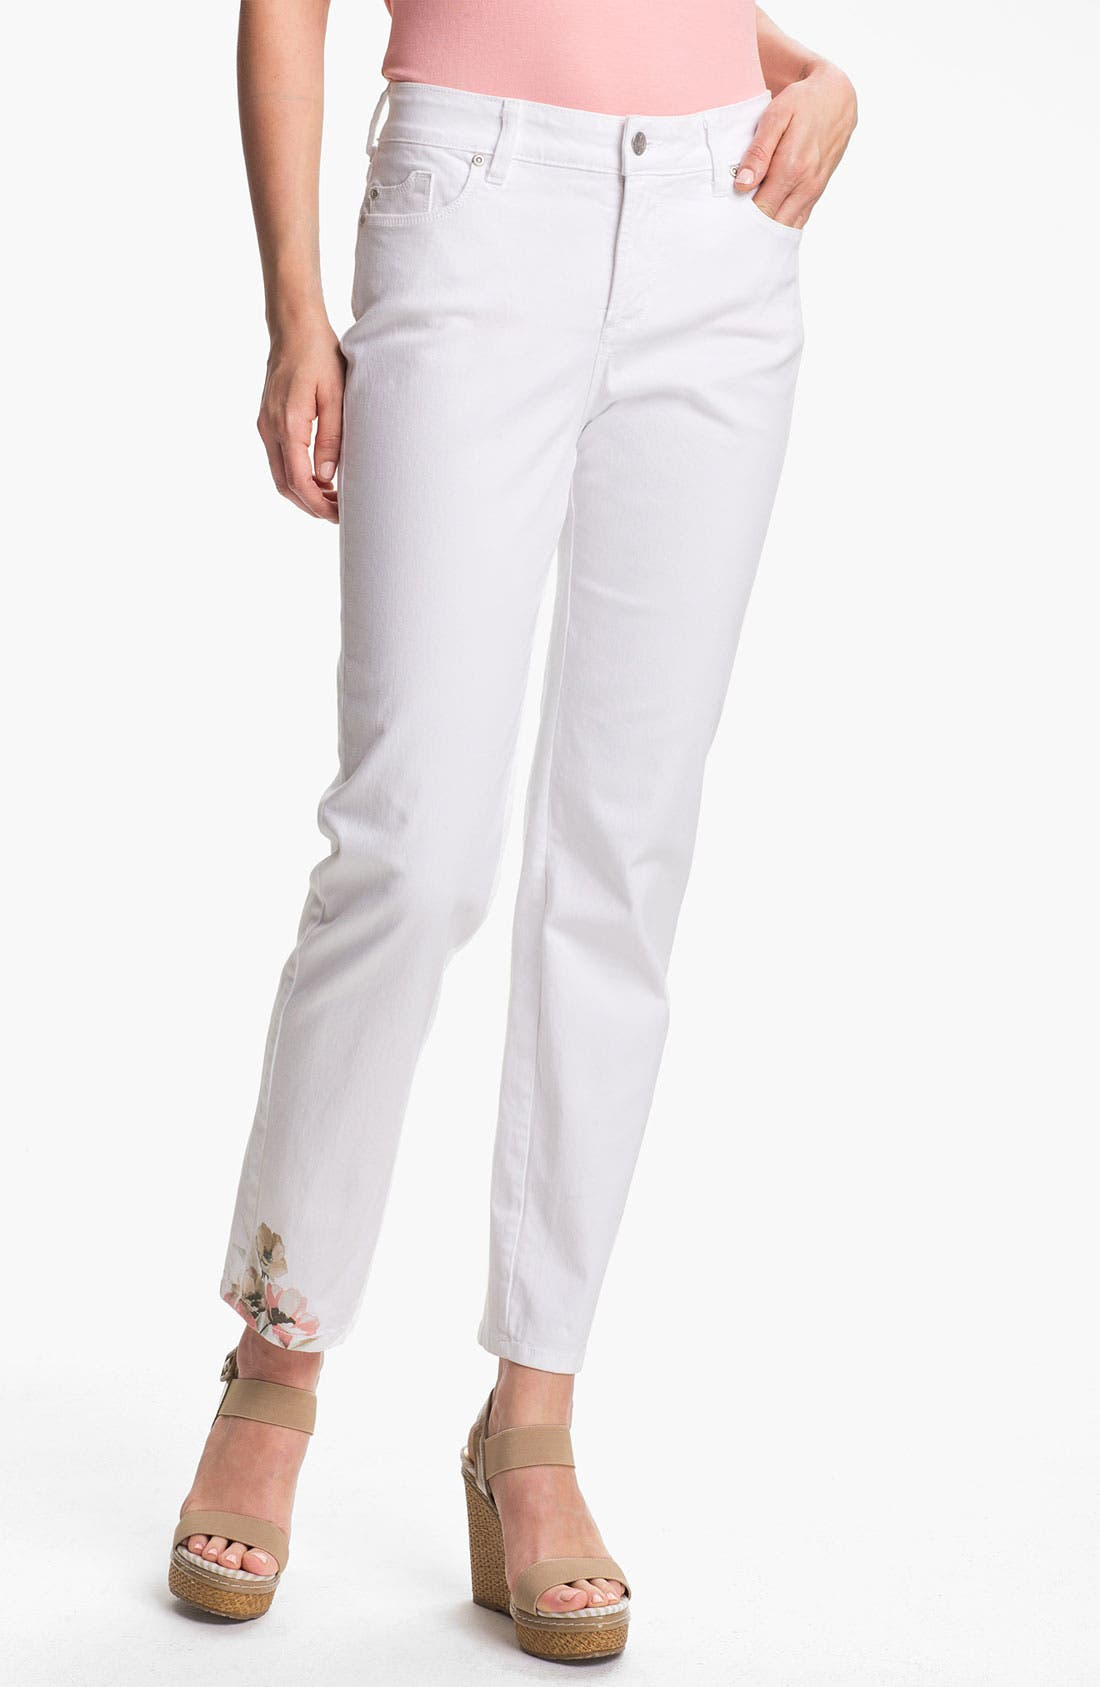 Alternate Image 1 Selected - NYDJ 'Alisha - Placed Print' Skinny Stretch Ankle Jeans